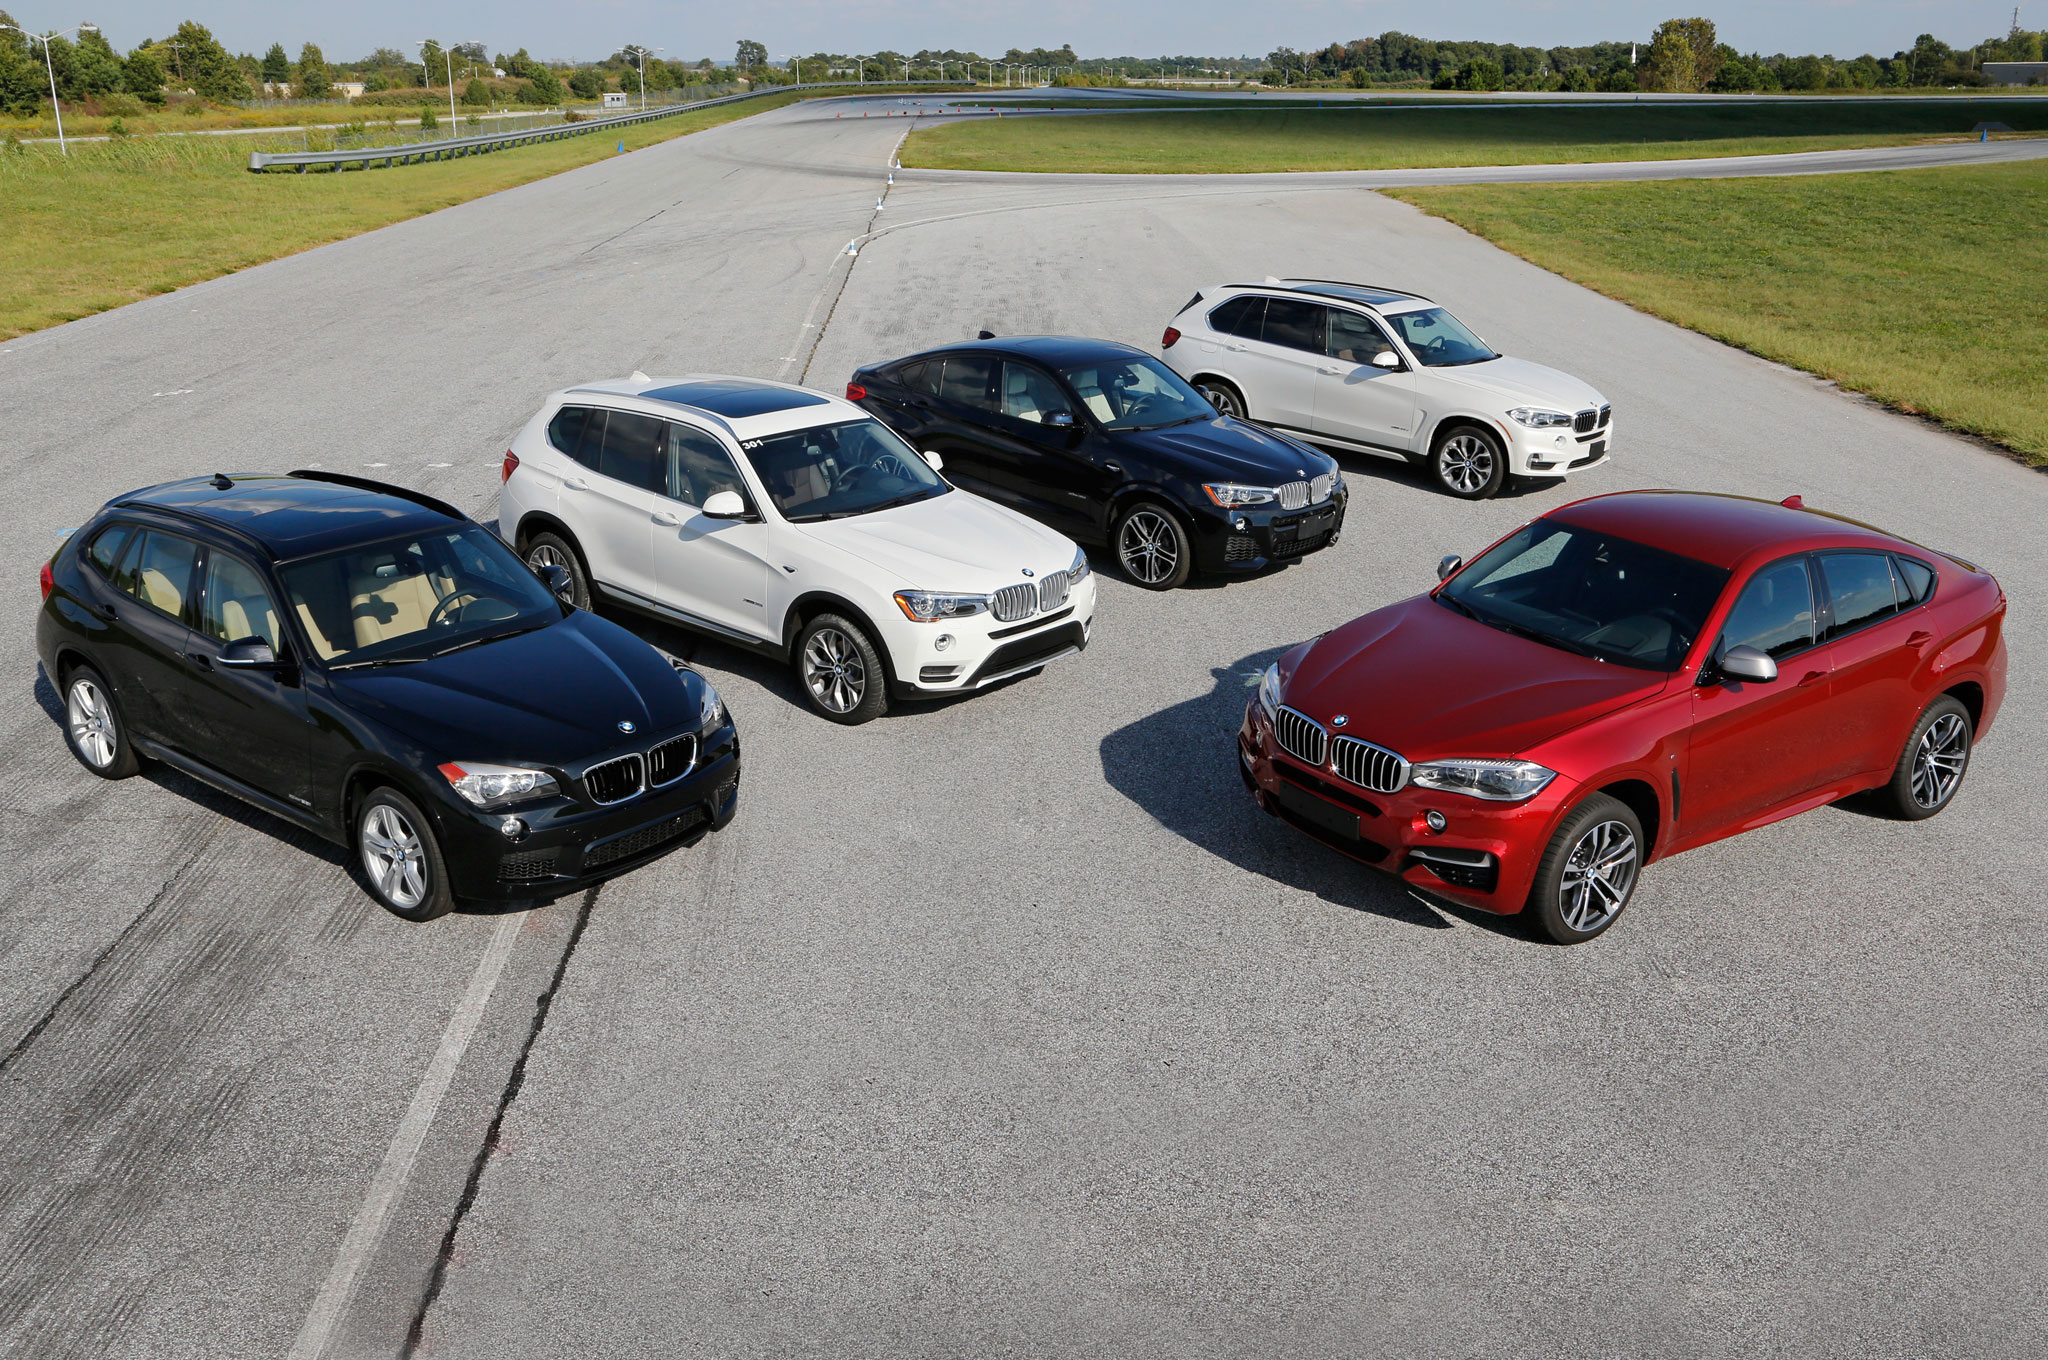 Superior Milestone: BMW X SUV Models Celebrate 15 Years